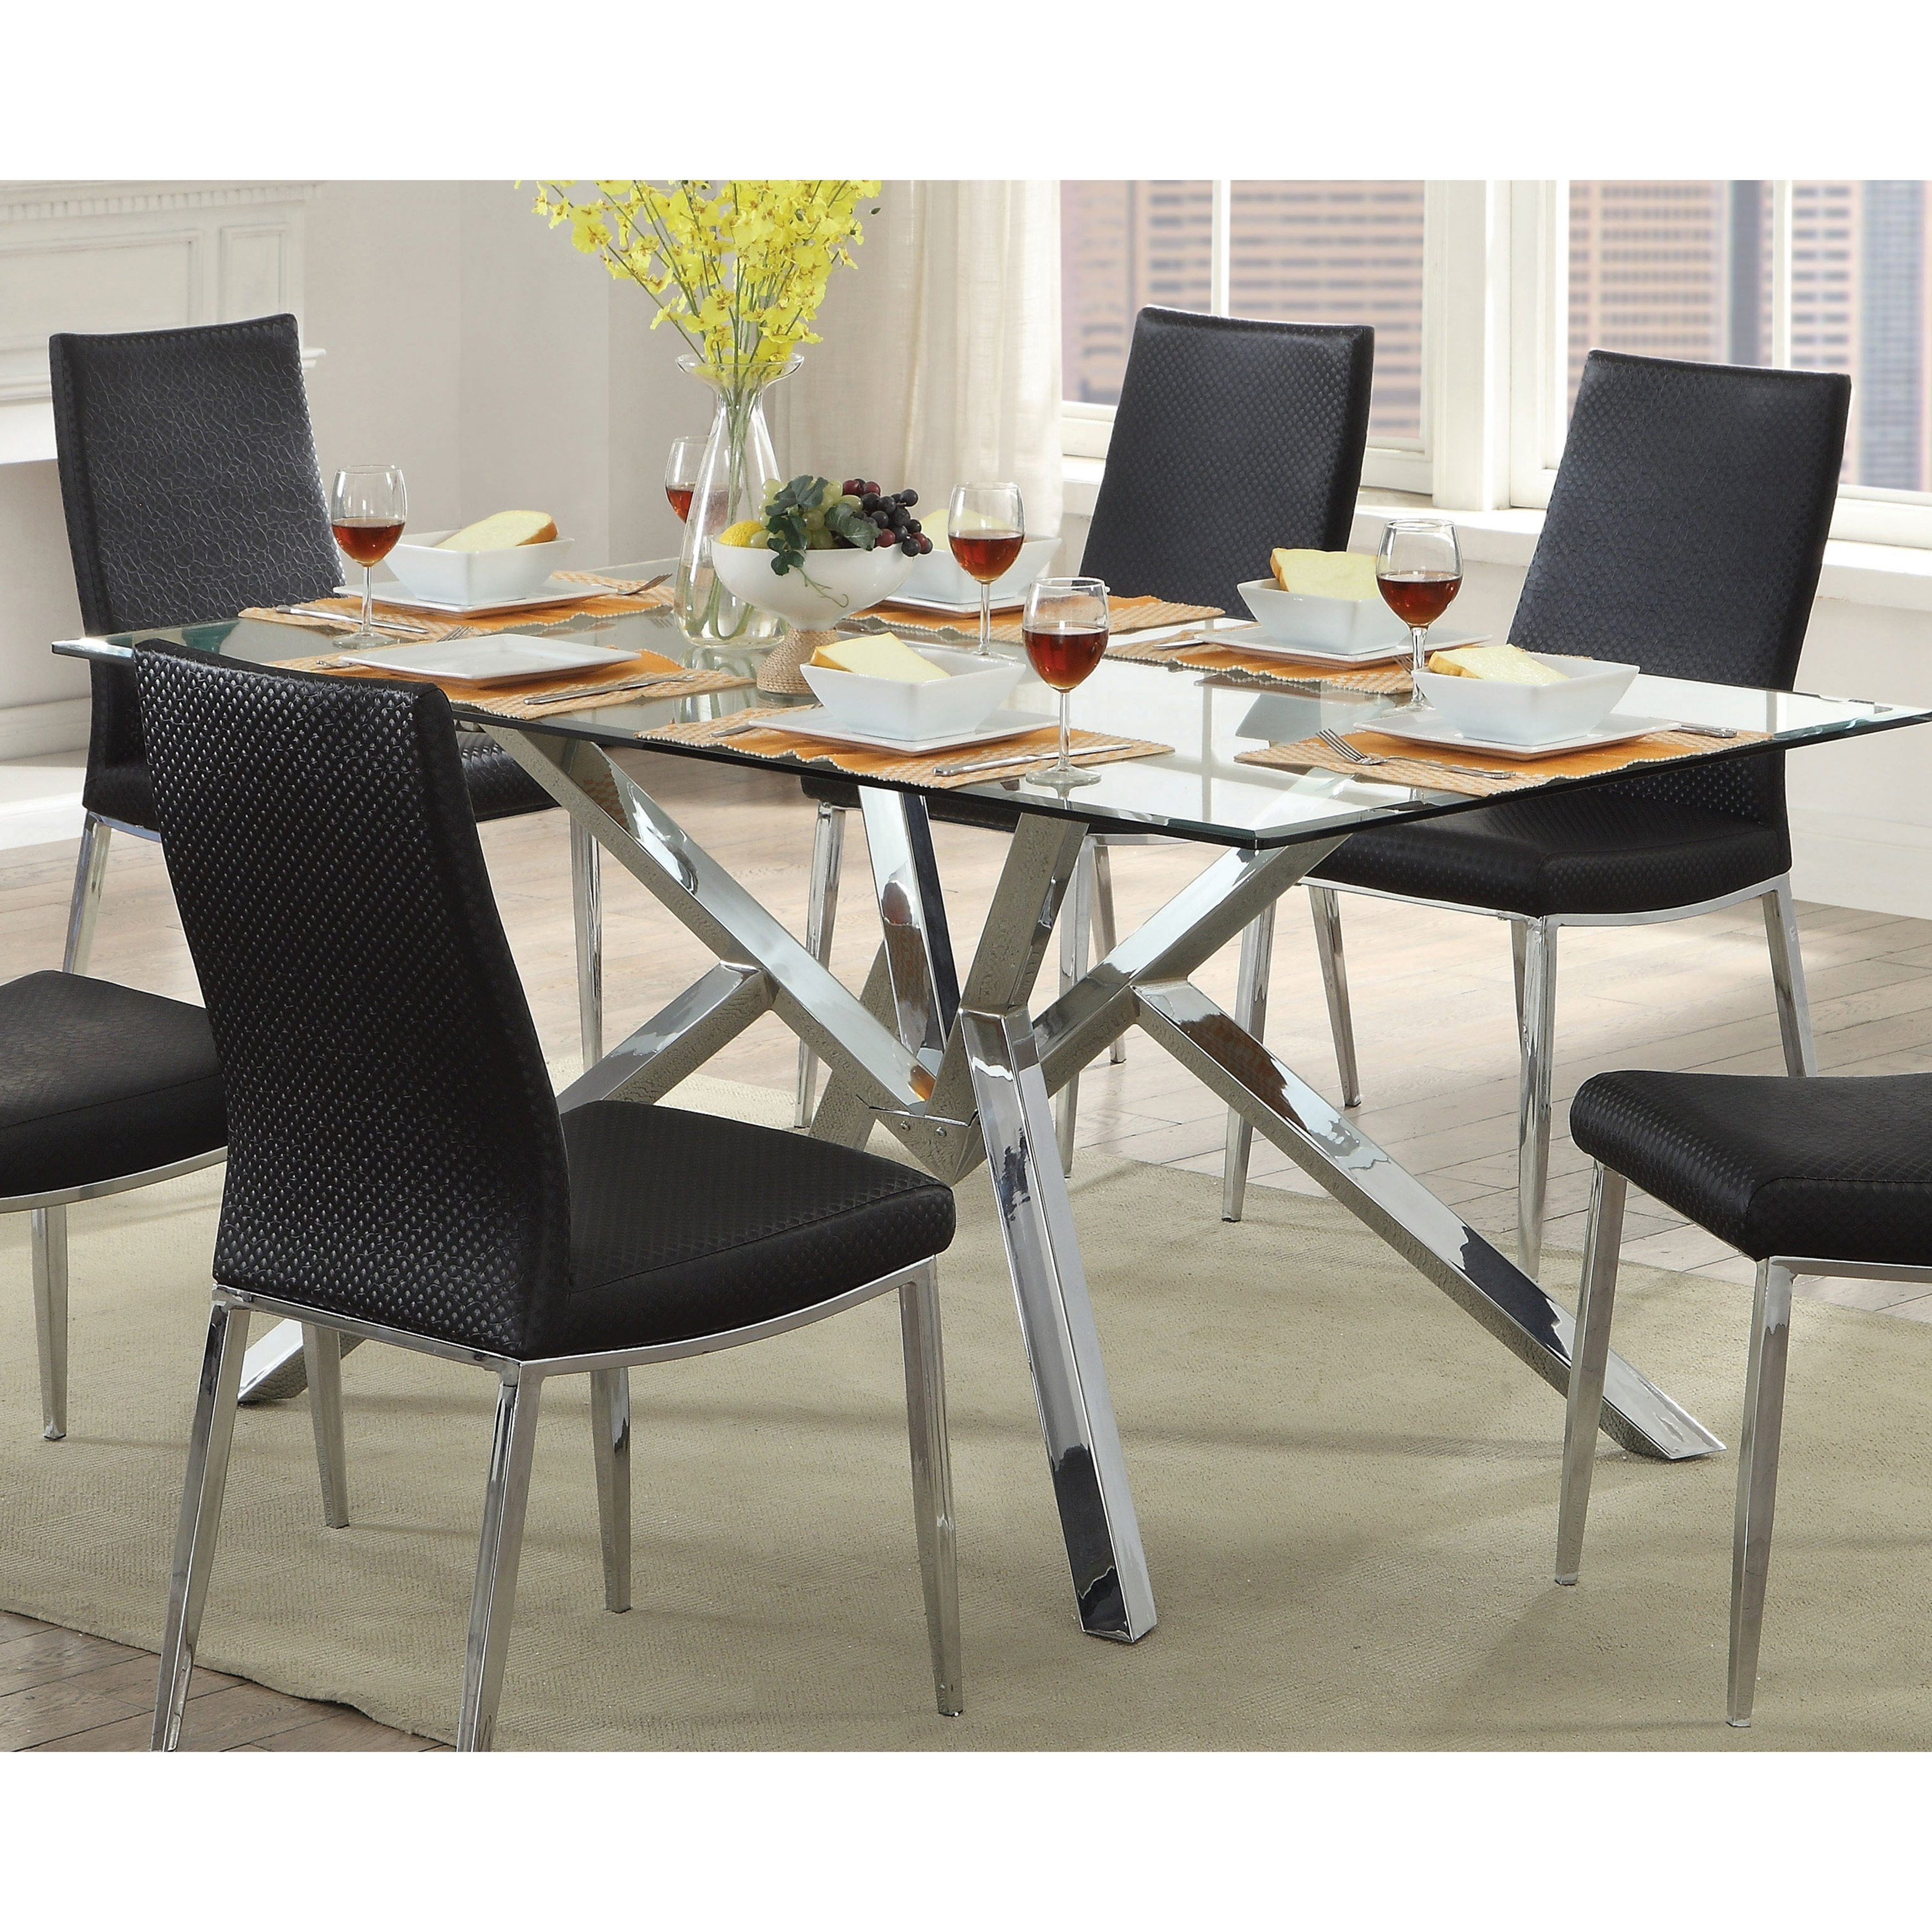 Shop Furniture Of America Casey Contemporary Chrome Dining Table – N With Regard To Well Liked Chrome Dining Tables And Chairs (View 22 of 25)